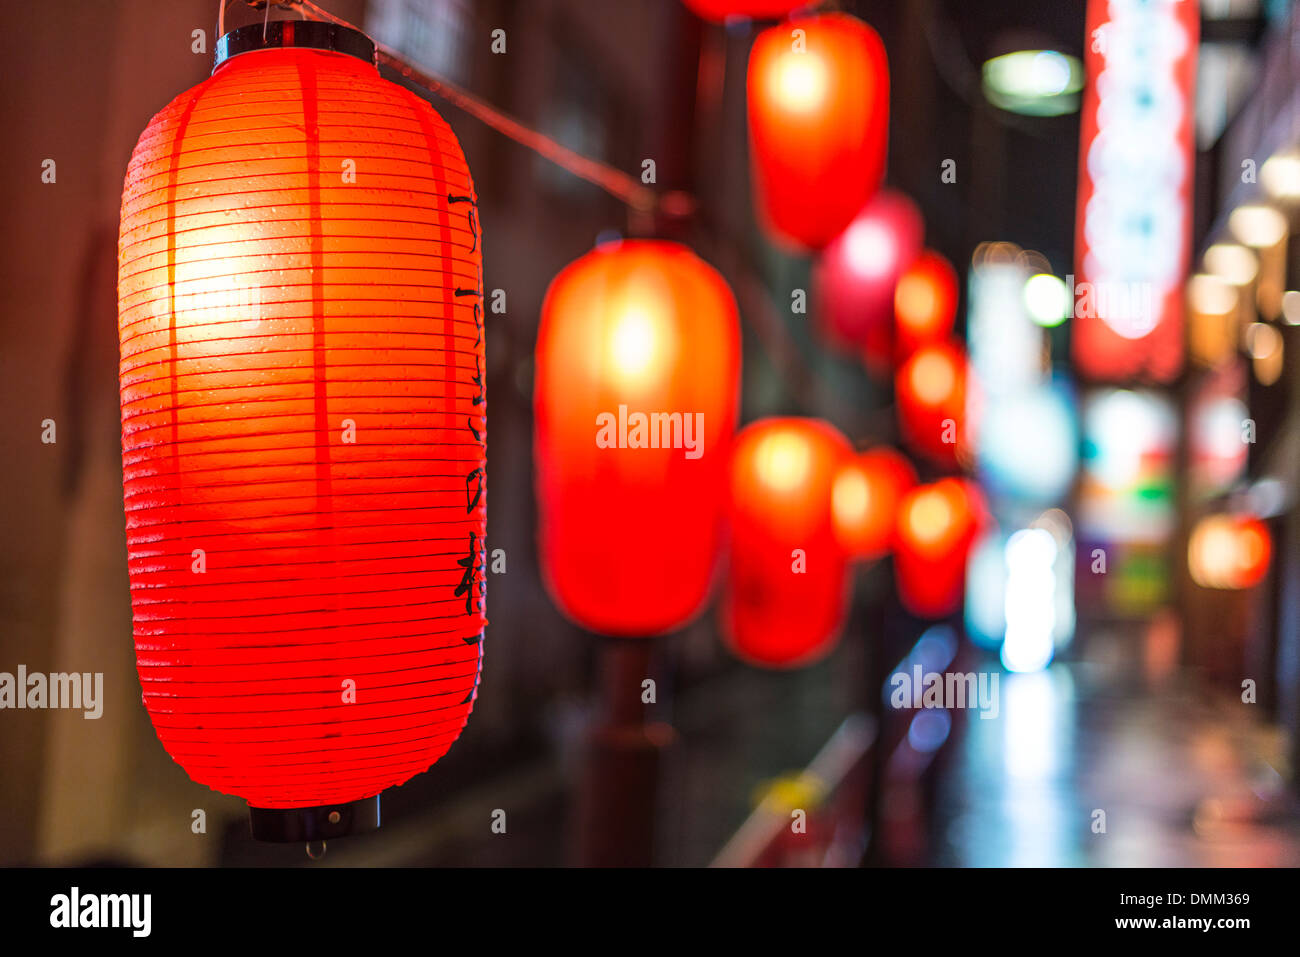 Lanterns in Susukino District of Sapporo, Japan. - Stock Image